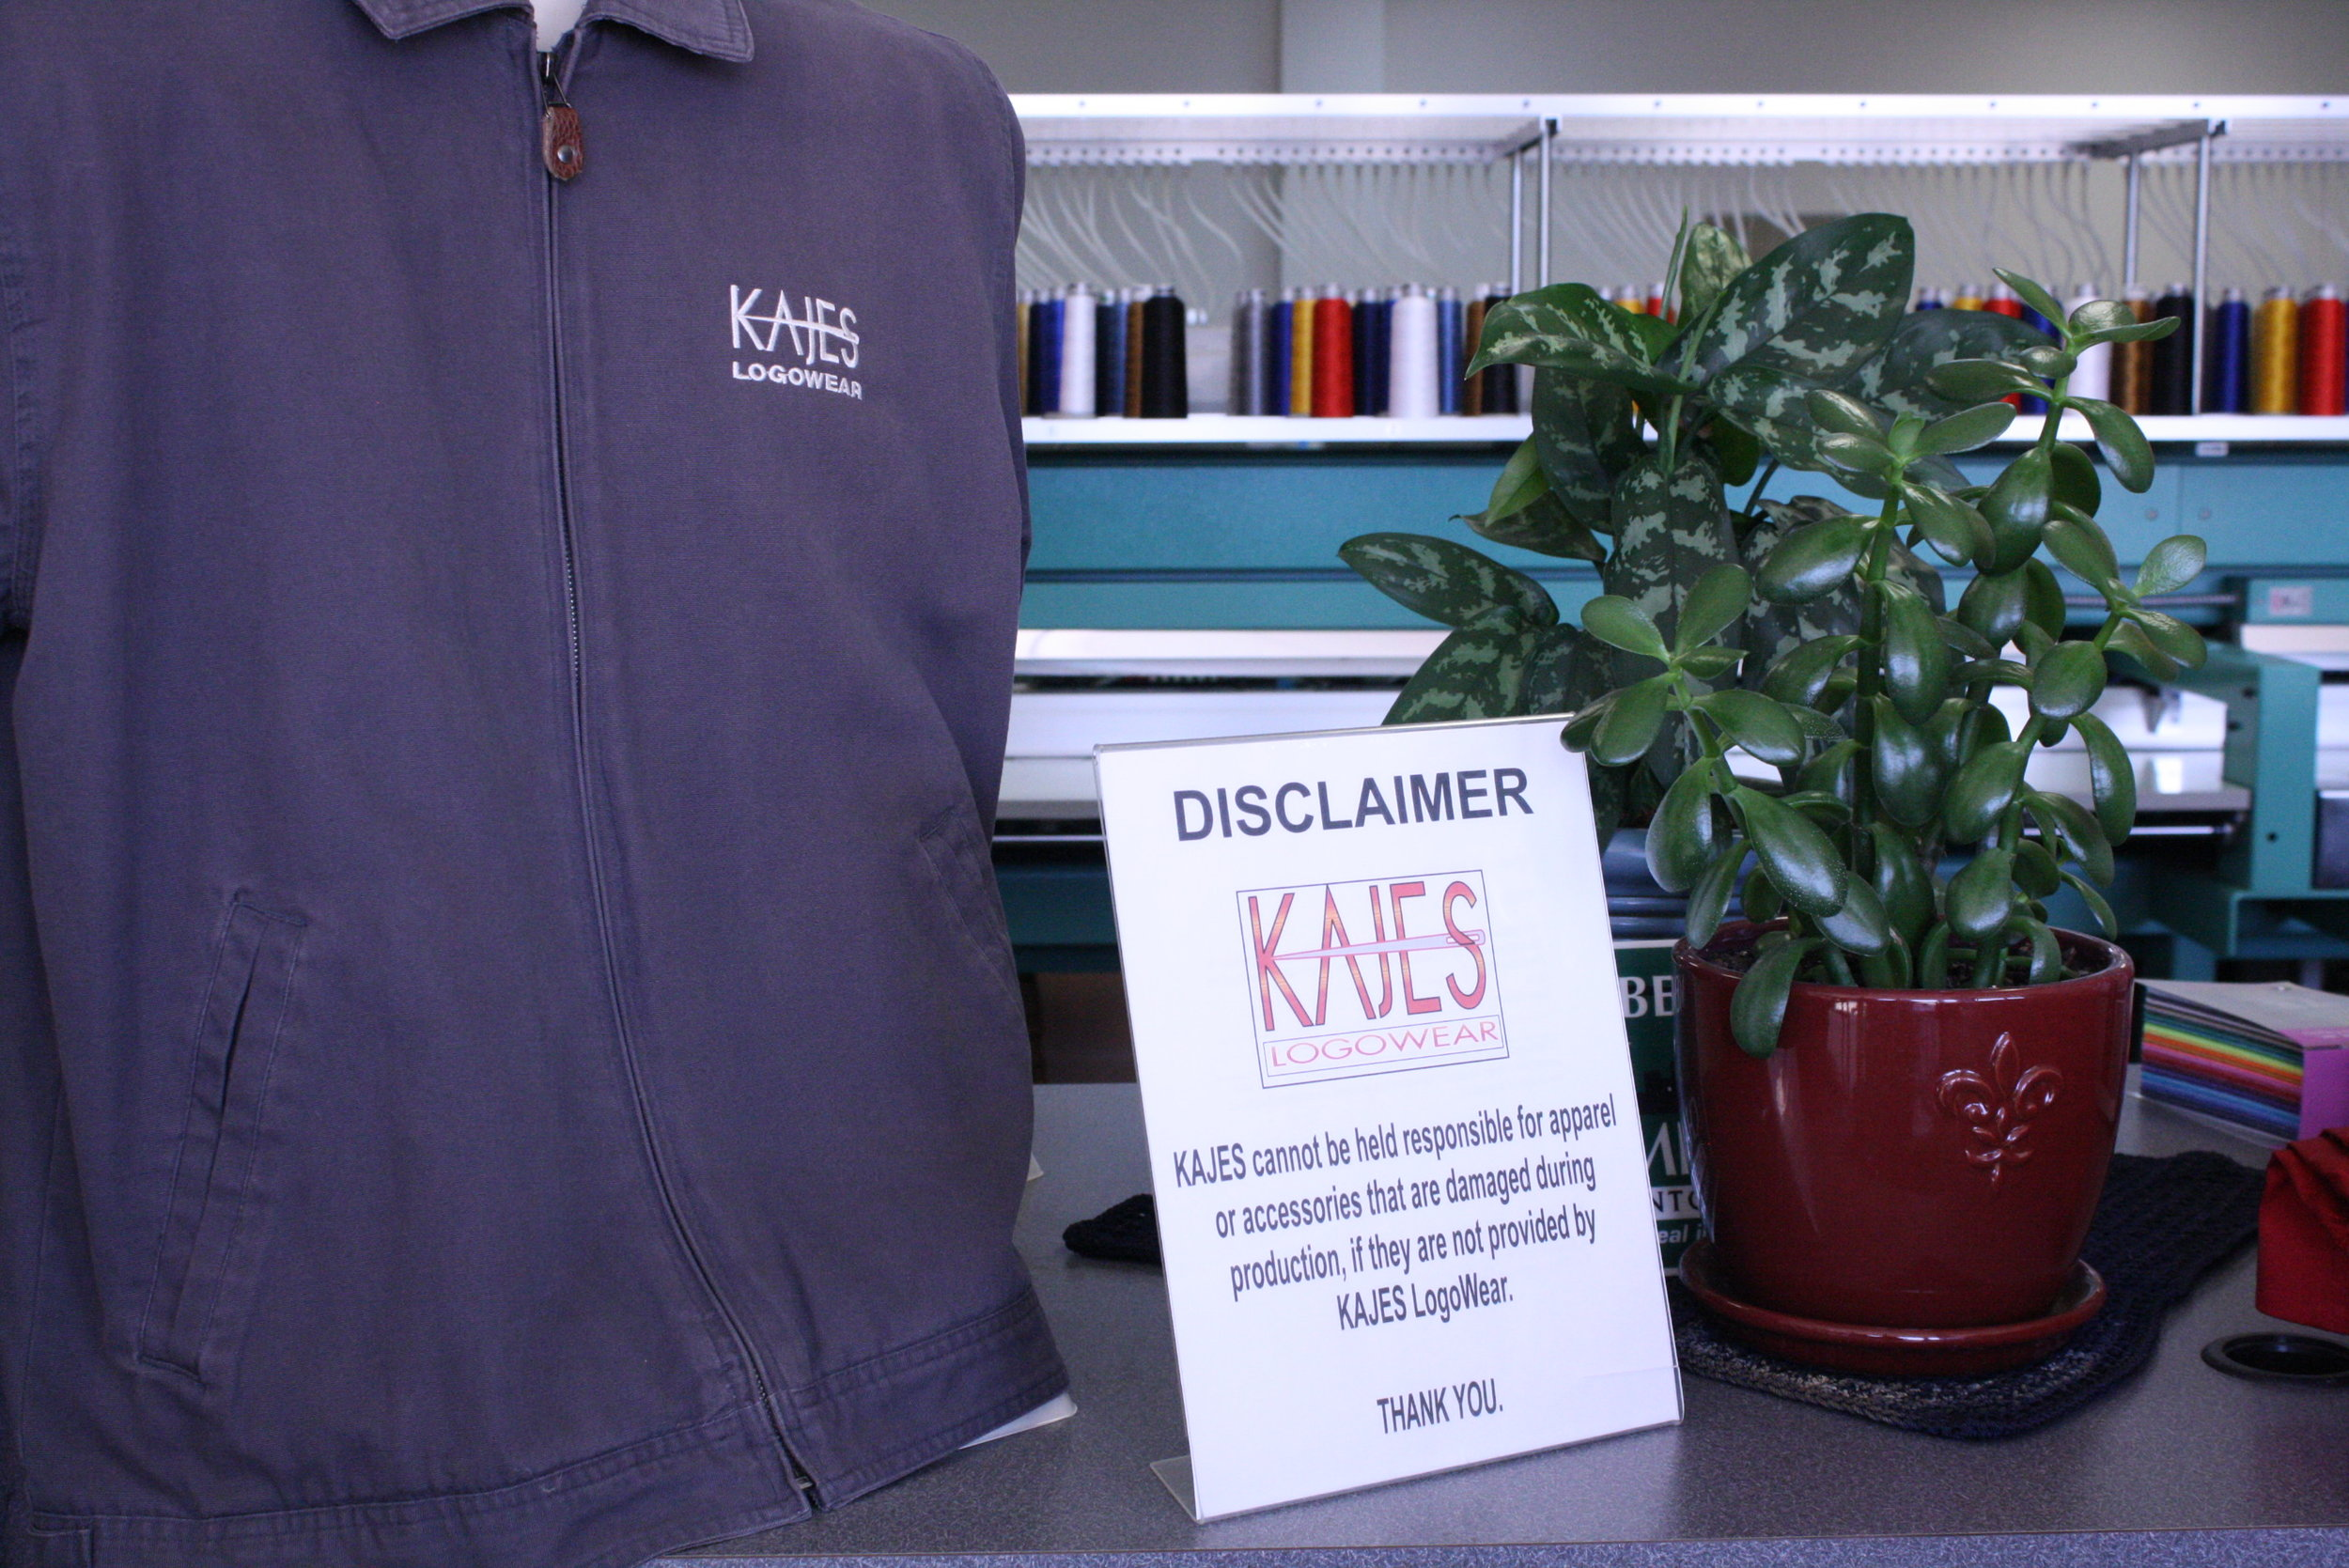 KAJES' Front Desk greets you with an open concept and full view of the facility.